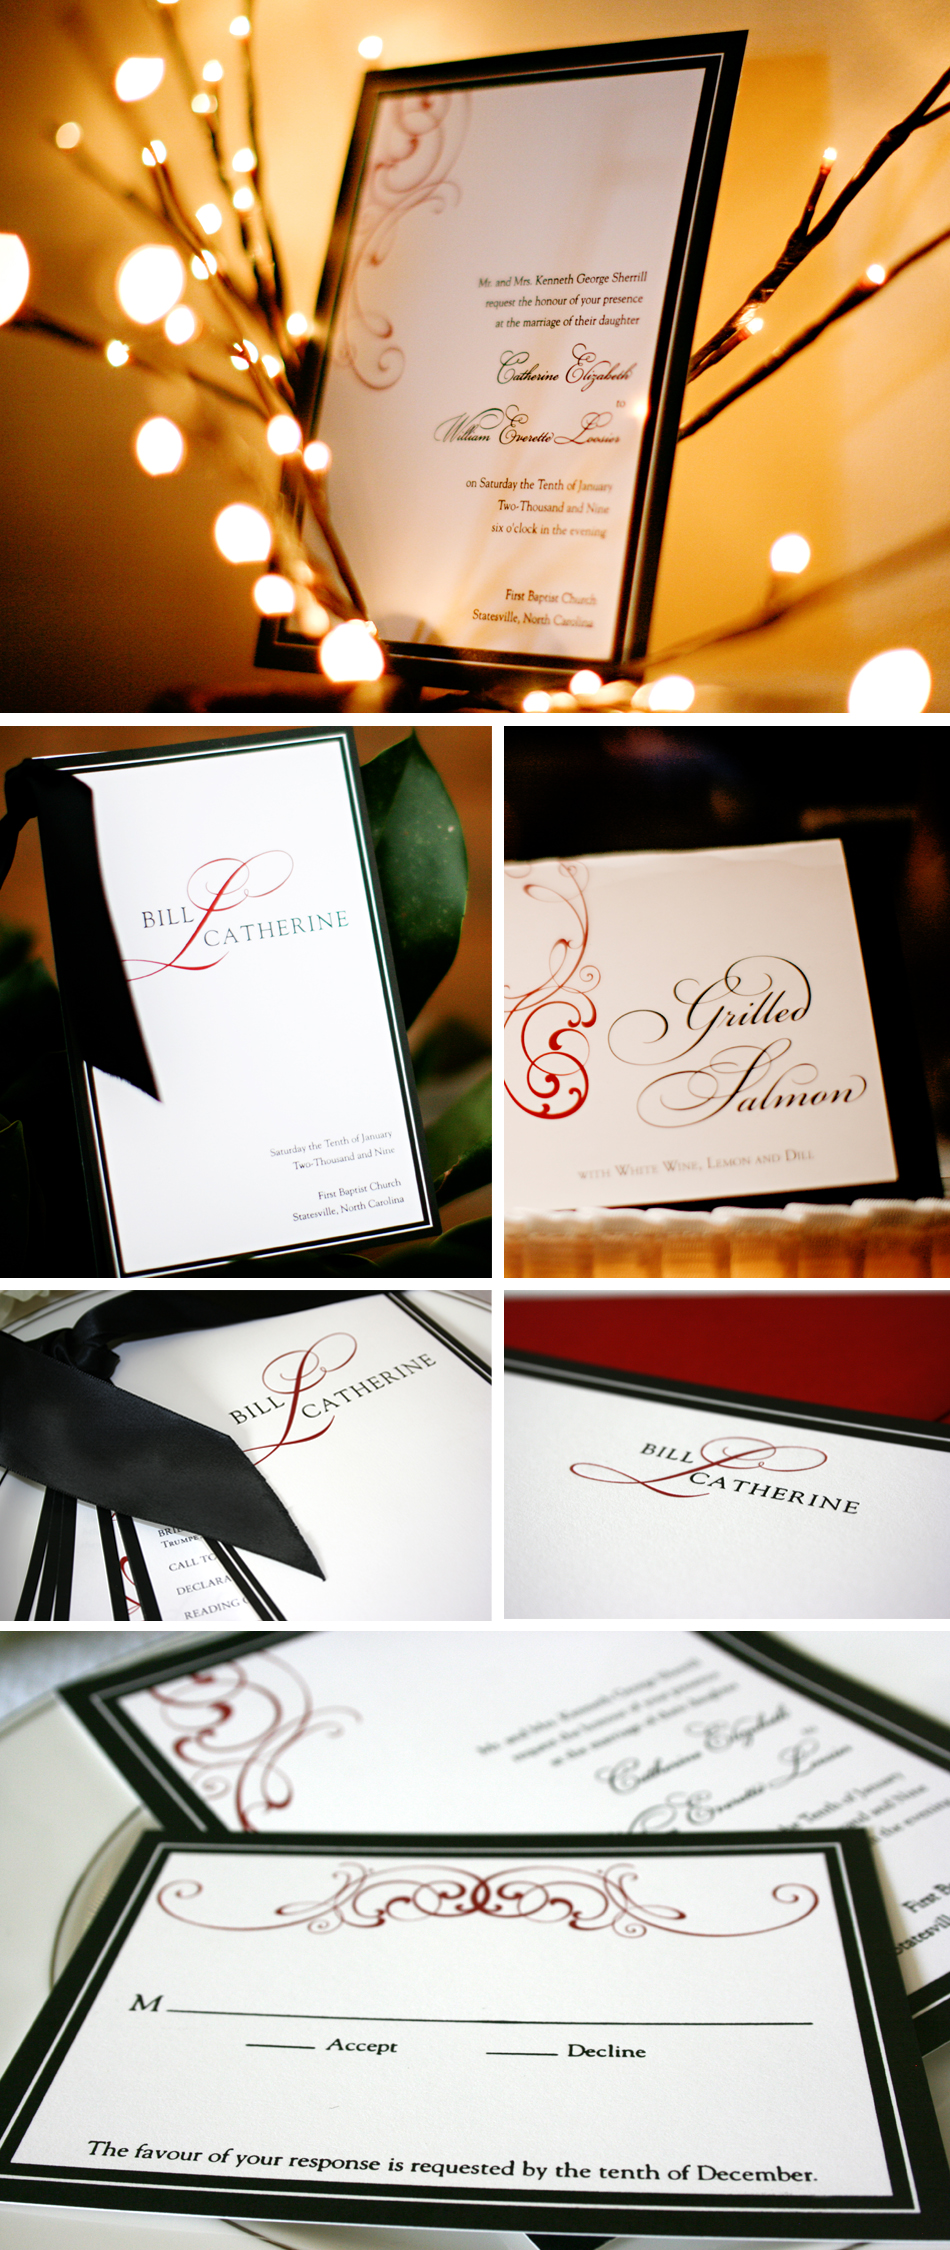 Wedding Photo Invitations is luxury invitations template